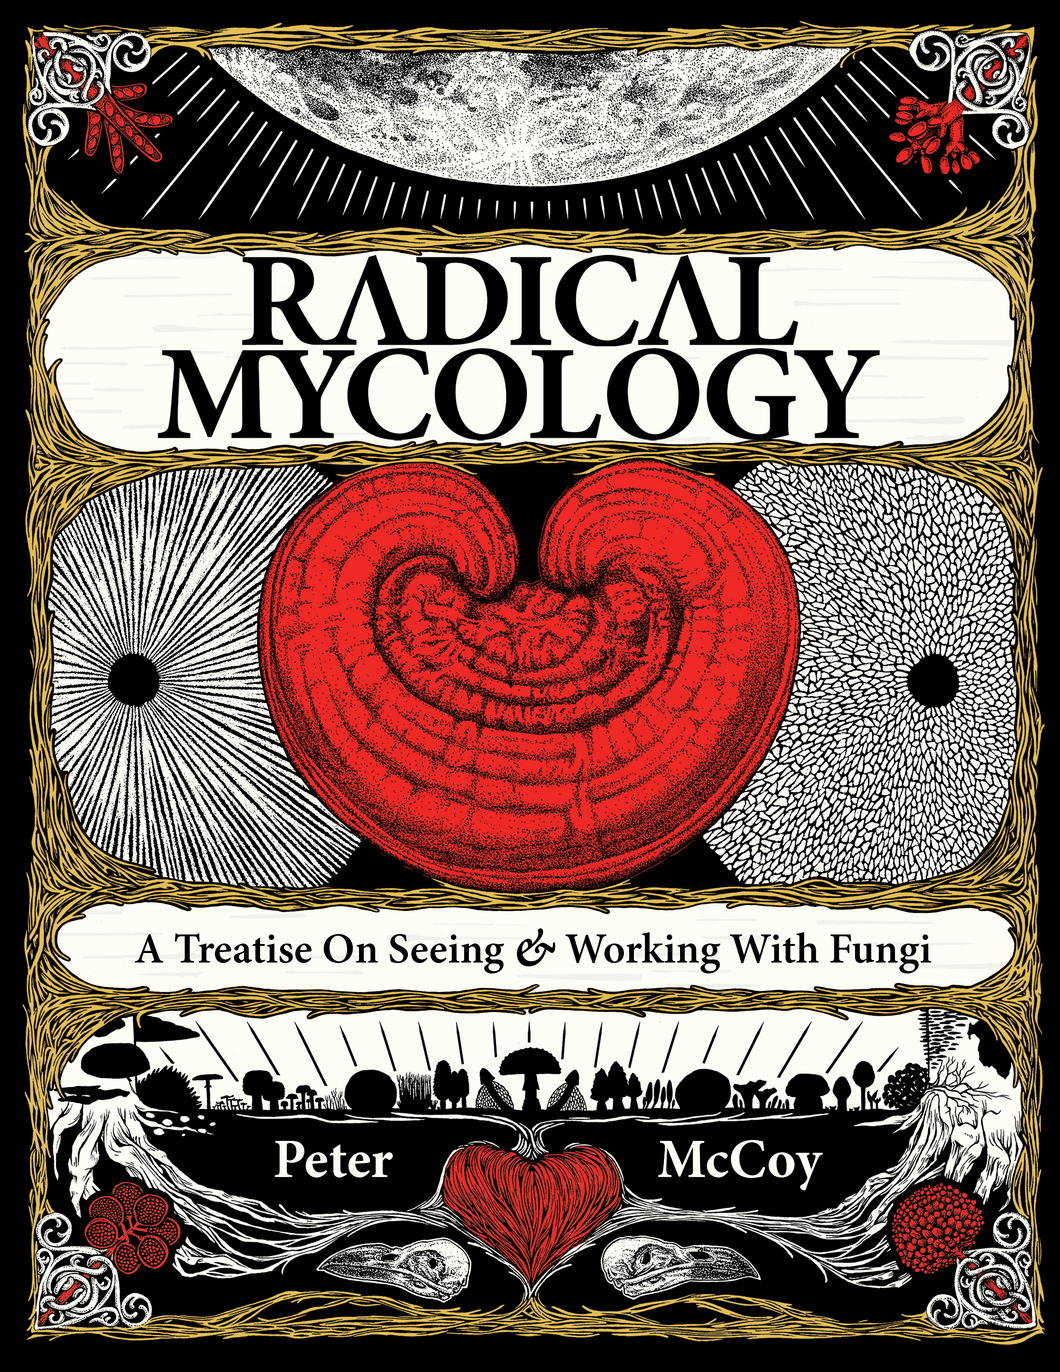 Radical Mycology: A Treatise On Seeing & Working With Fungi - Chthaeus Press